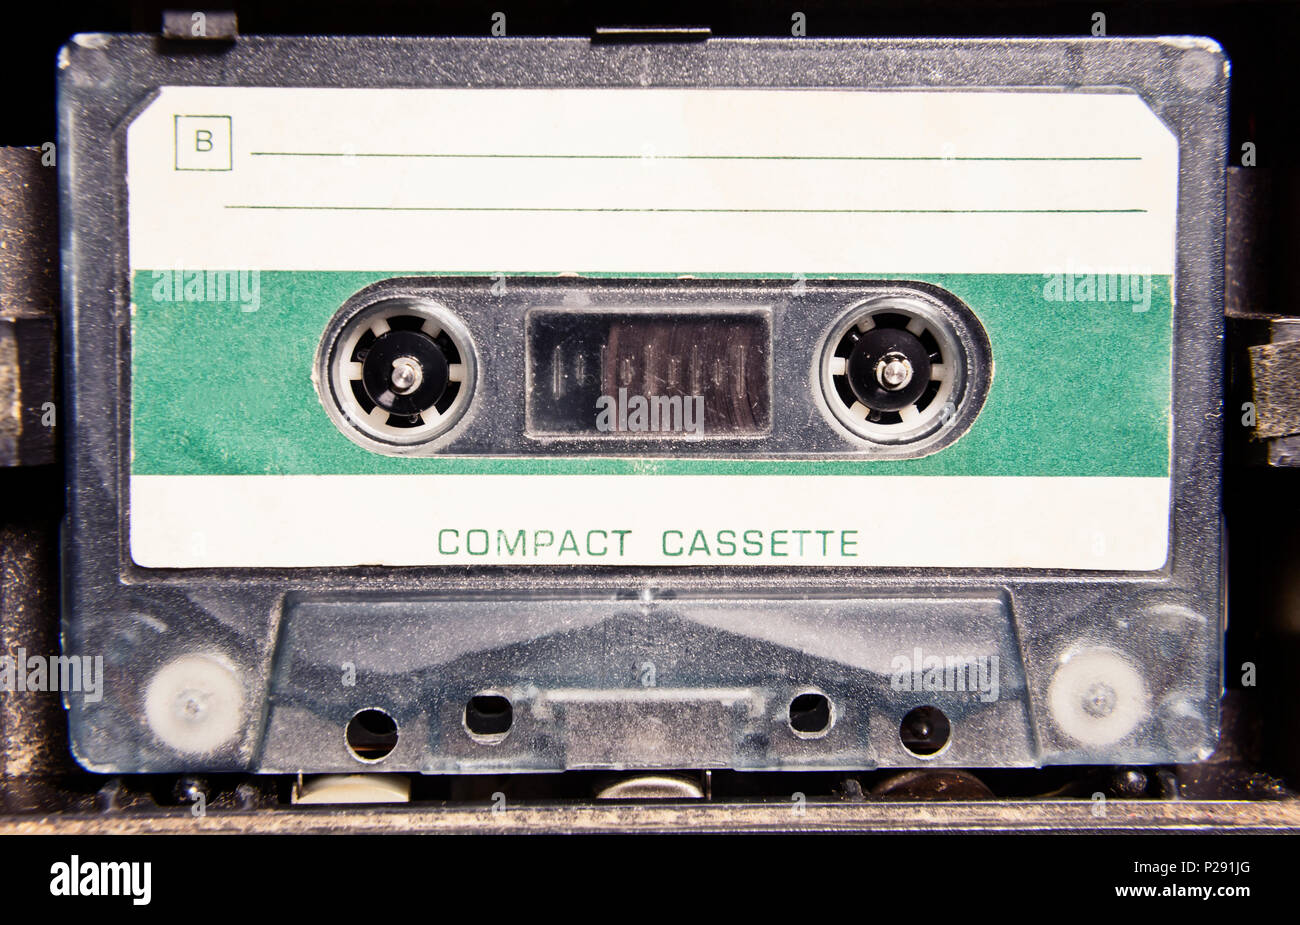 An old cassette tape in a player, with enough room to add your own text elements. - Stock Image